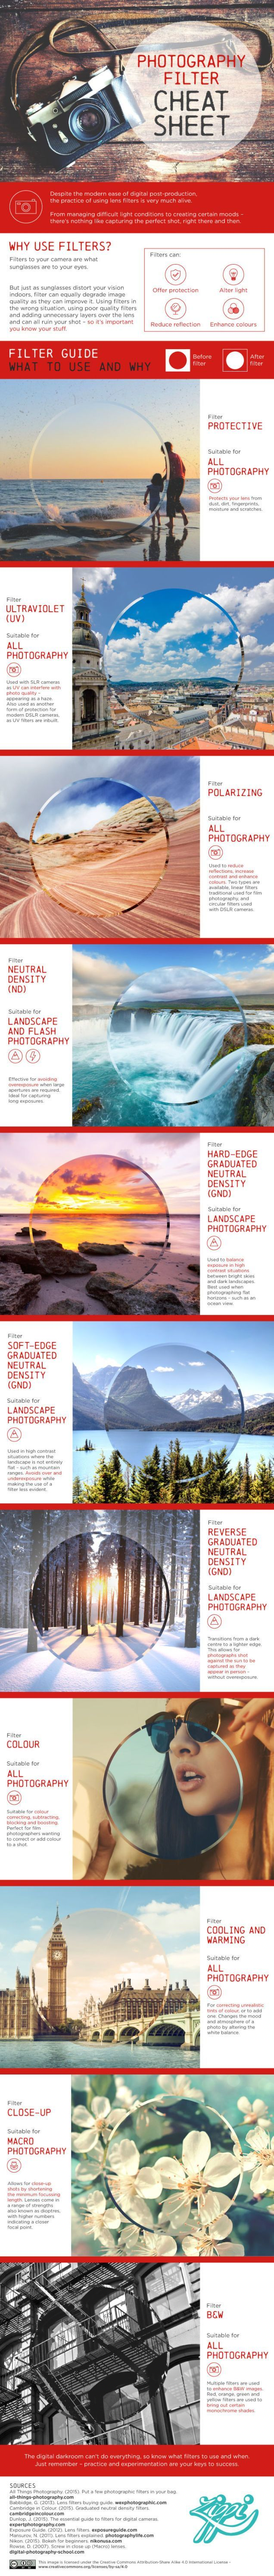 This Cheat Sheet Explains Camera Filters and When to Use Them